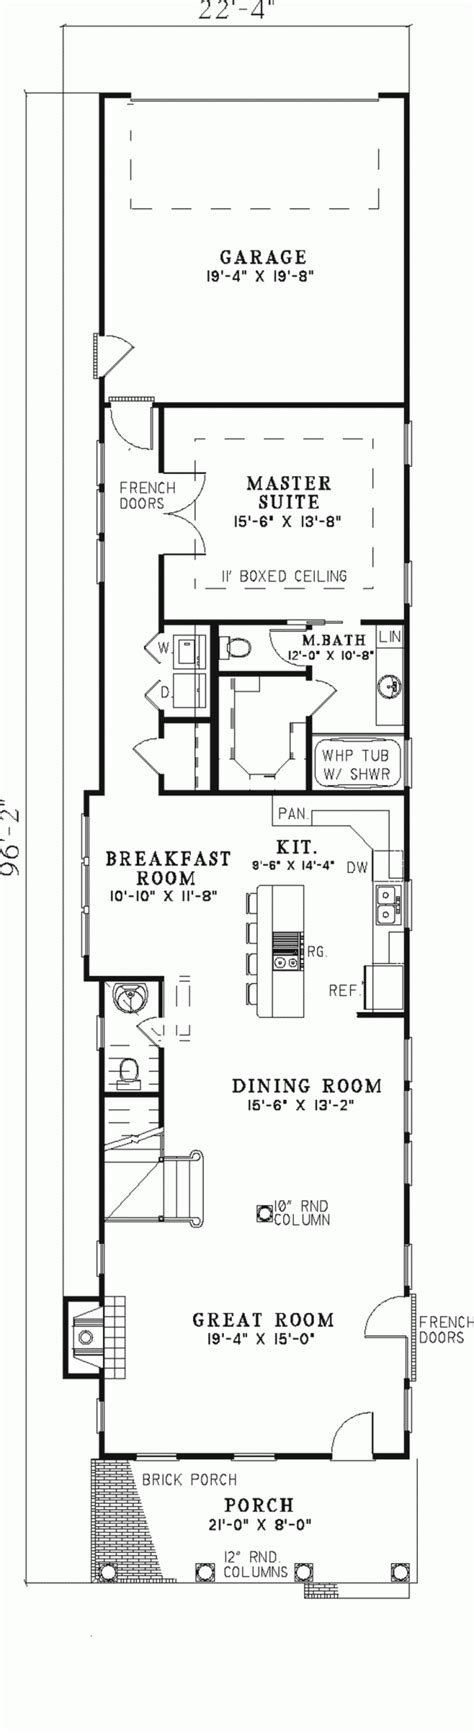 two story rectangular house plans rectangular 2 story house plans 28 images simple two